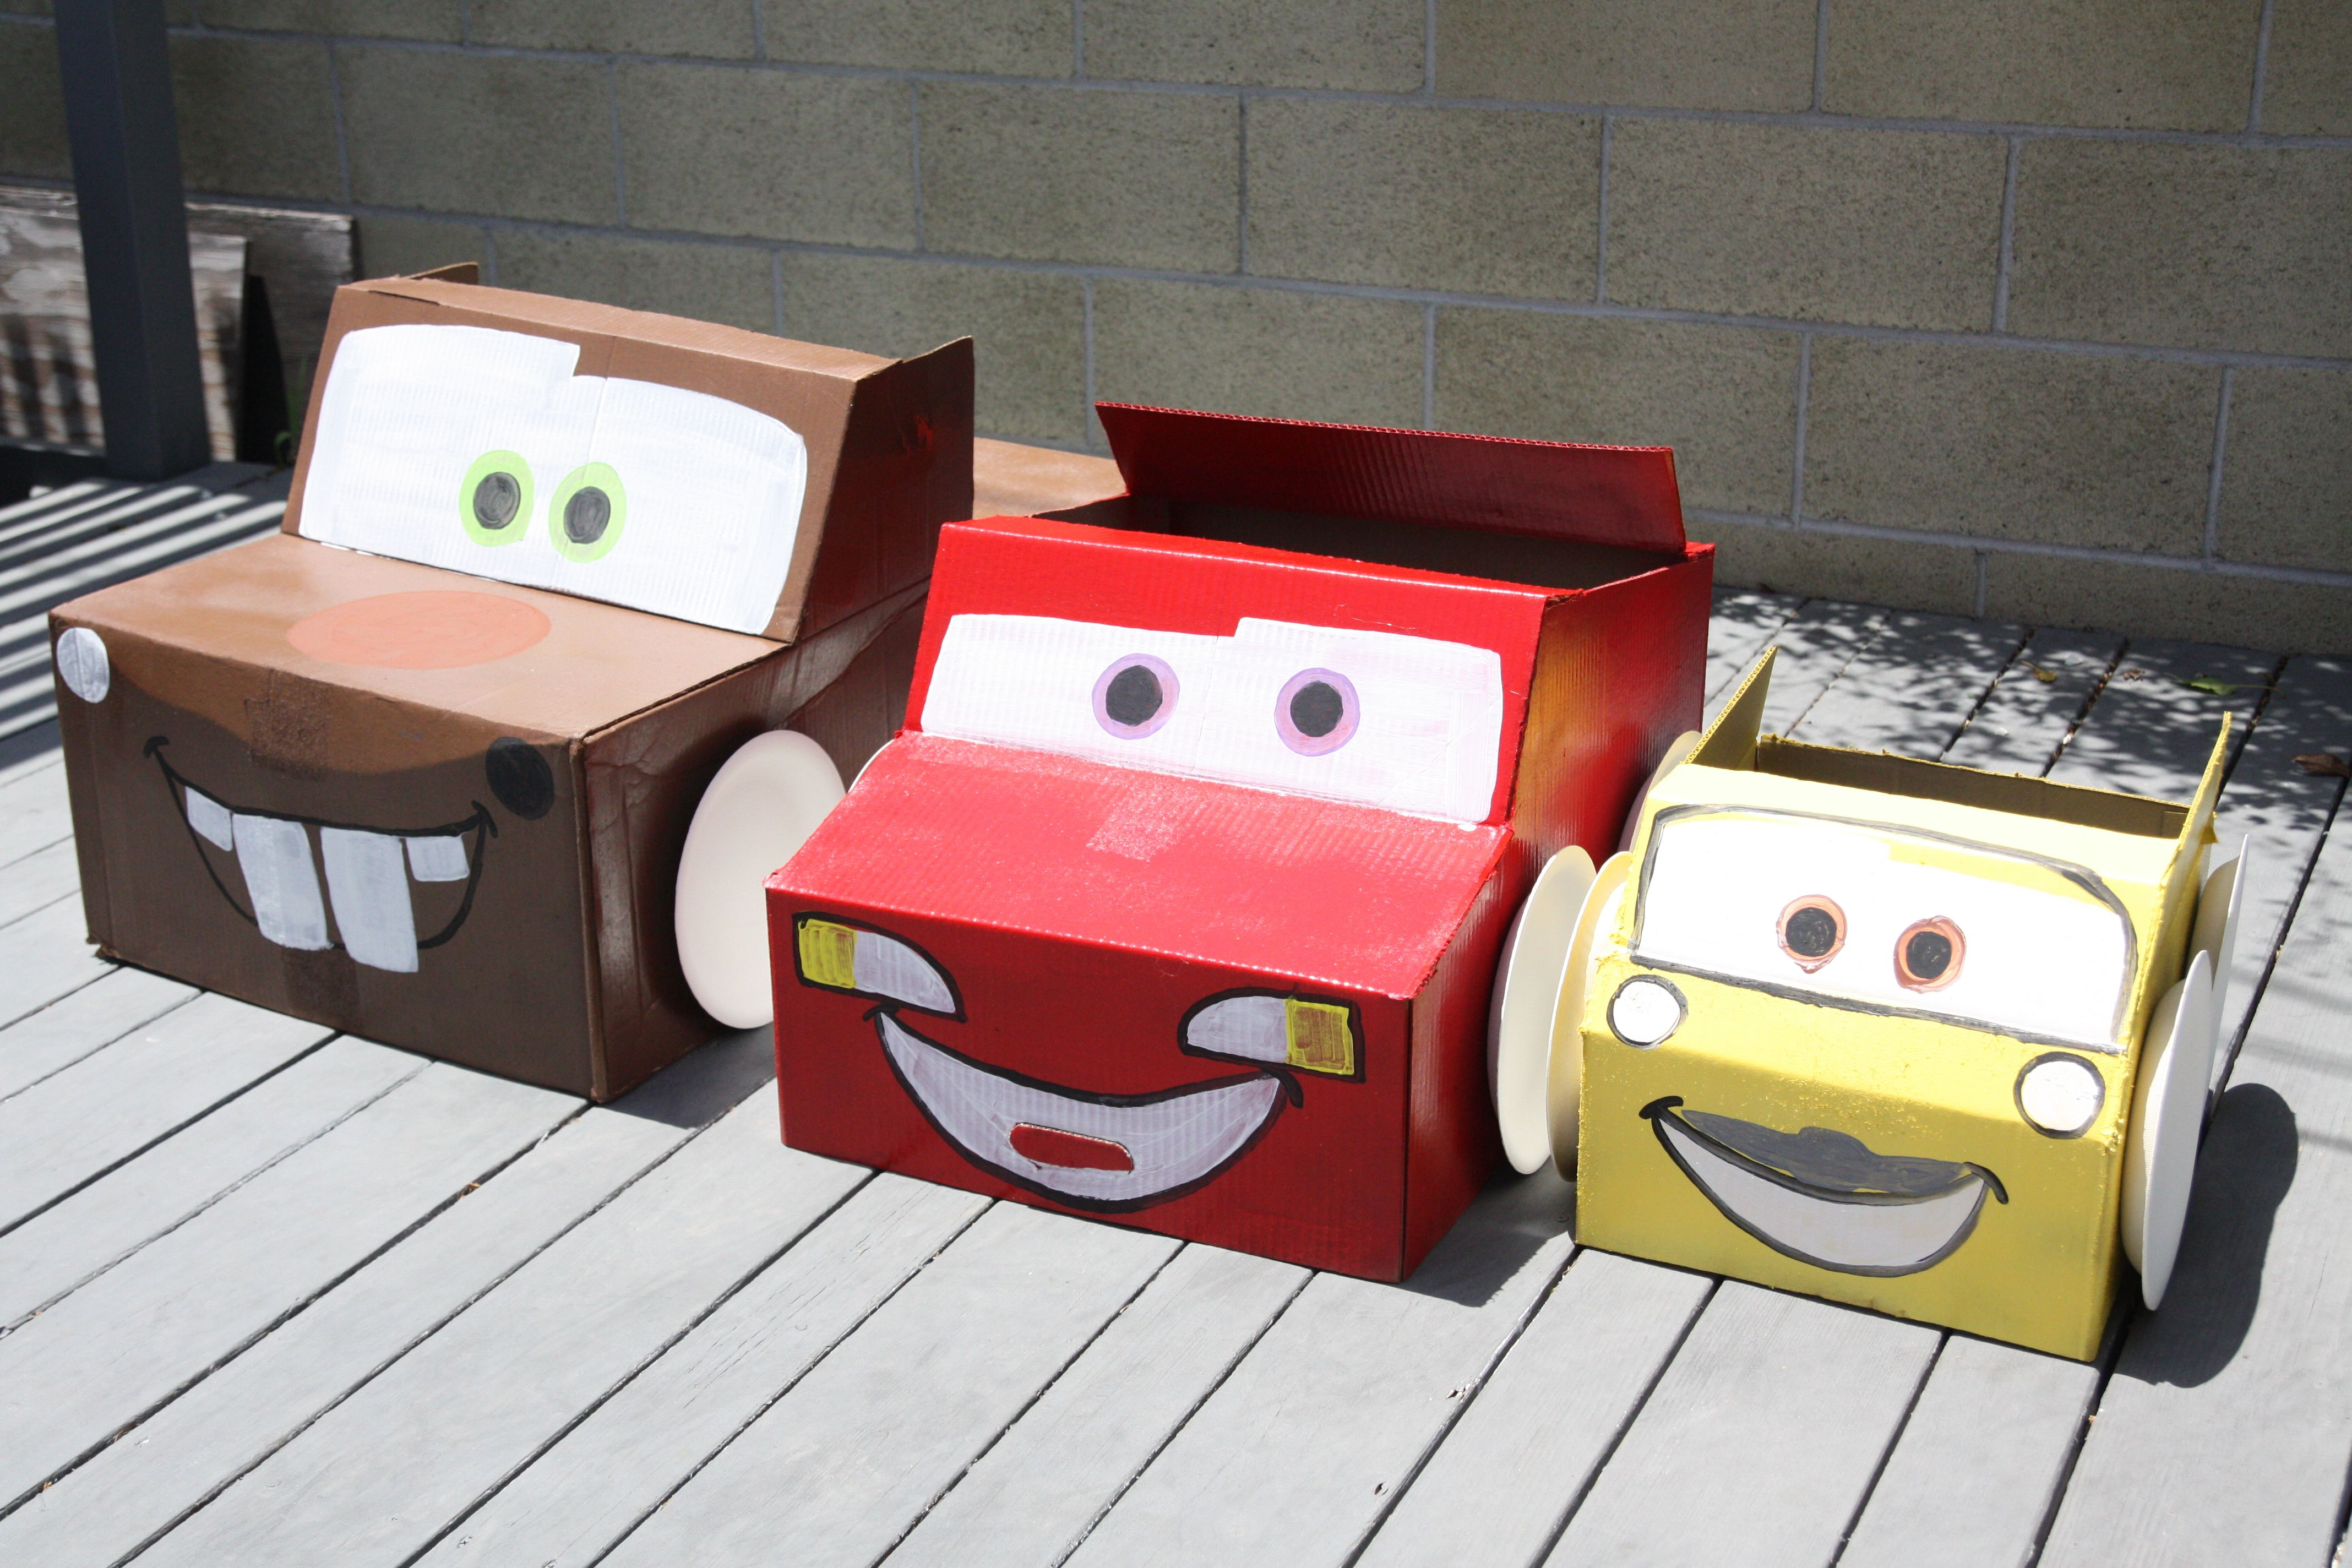 10 Ideas About Cardboard Box Cars On Pinterest: Cardboard Box Cars From The Bday Bash